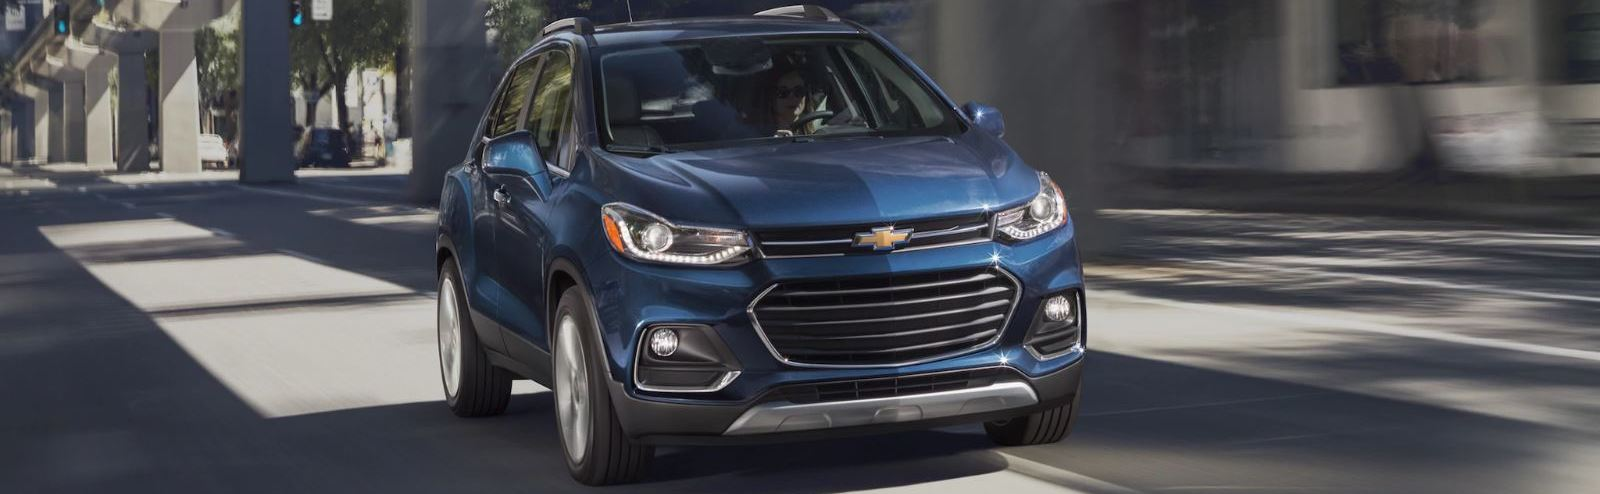 2020 Chevrolet Trax Leasing near Orland Park, IL